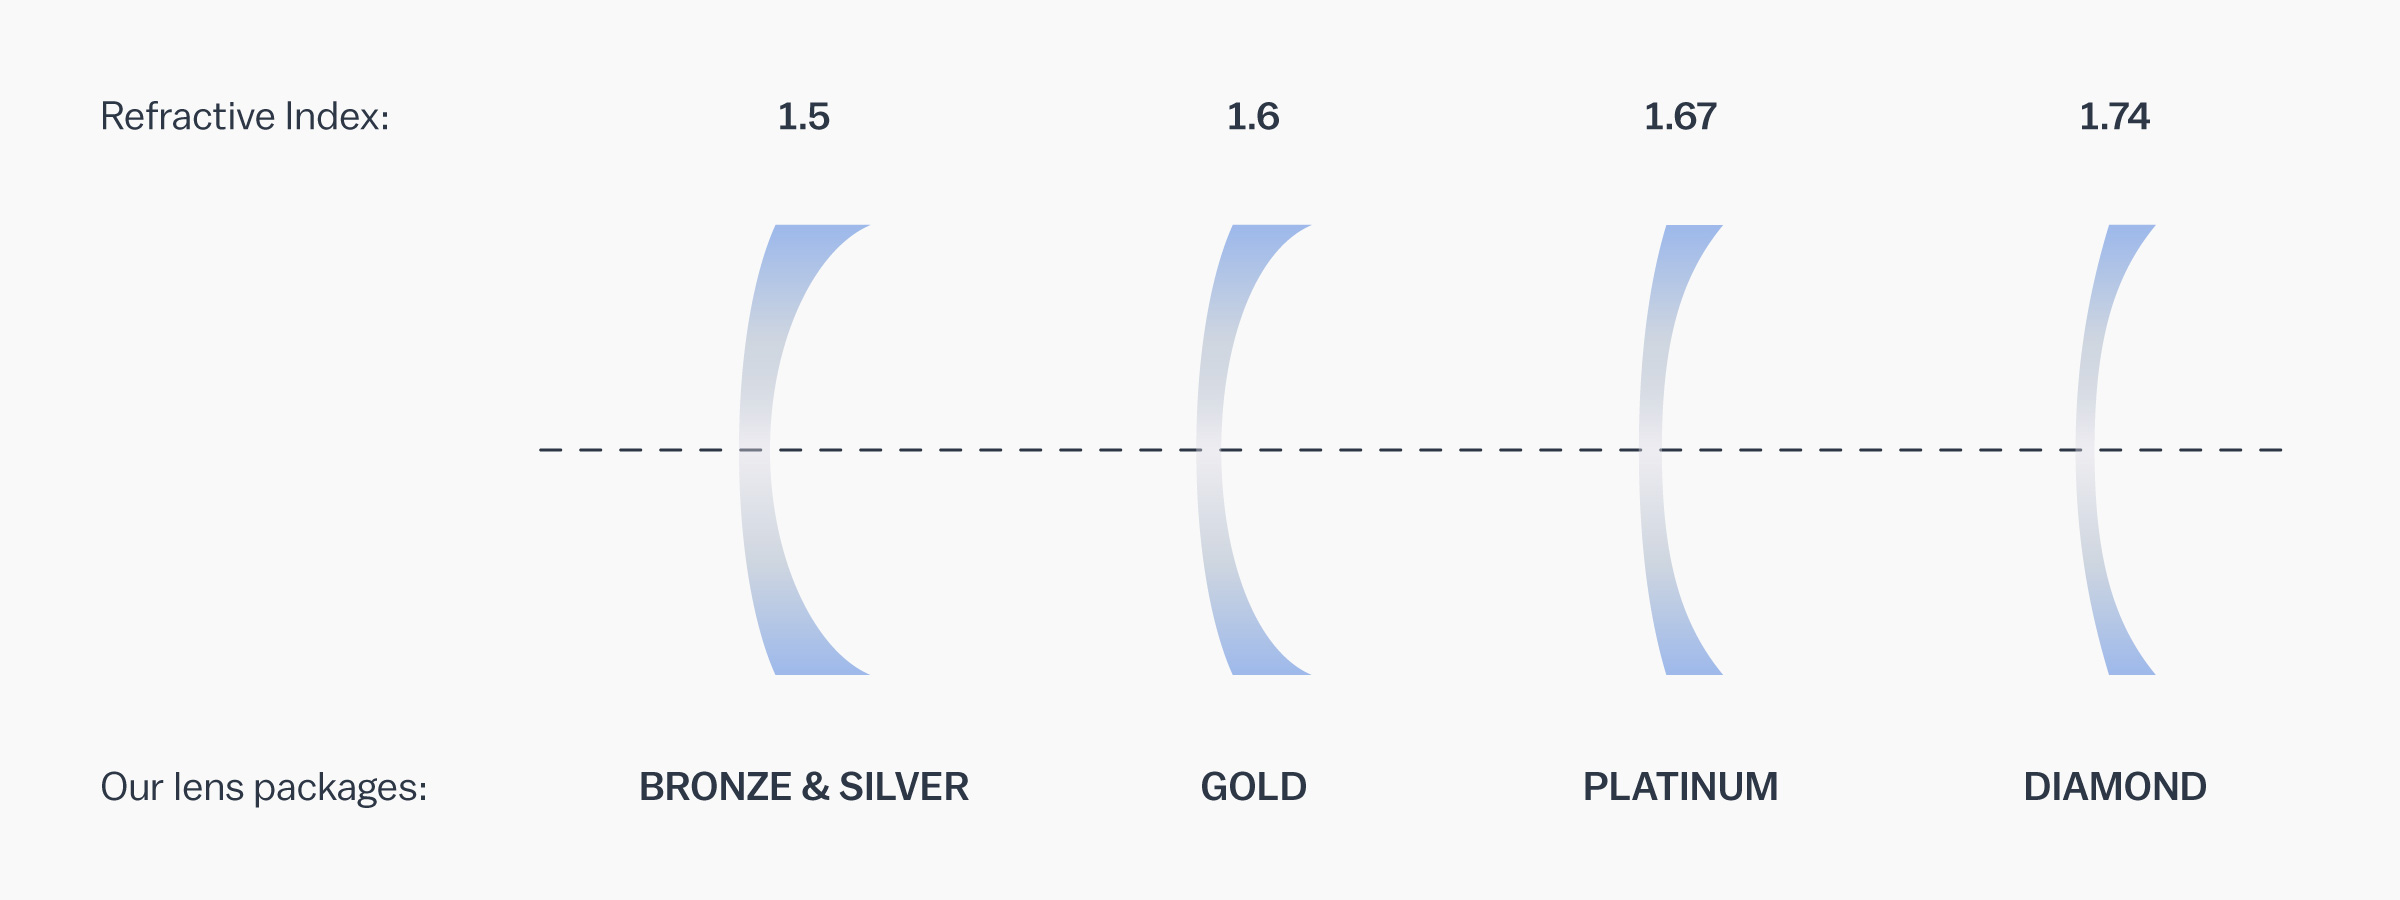 A graphic showing the refractive index of each of our lens packages. Bronze & Silver - 1.5 | Gold - 1.6 | Platinum - 1.67 | Diamond - 1.74